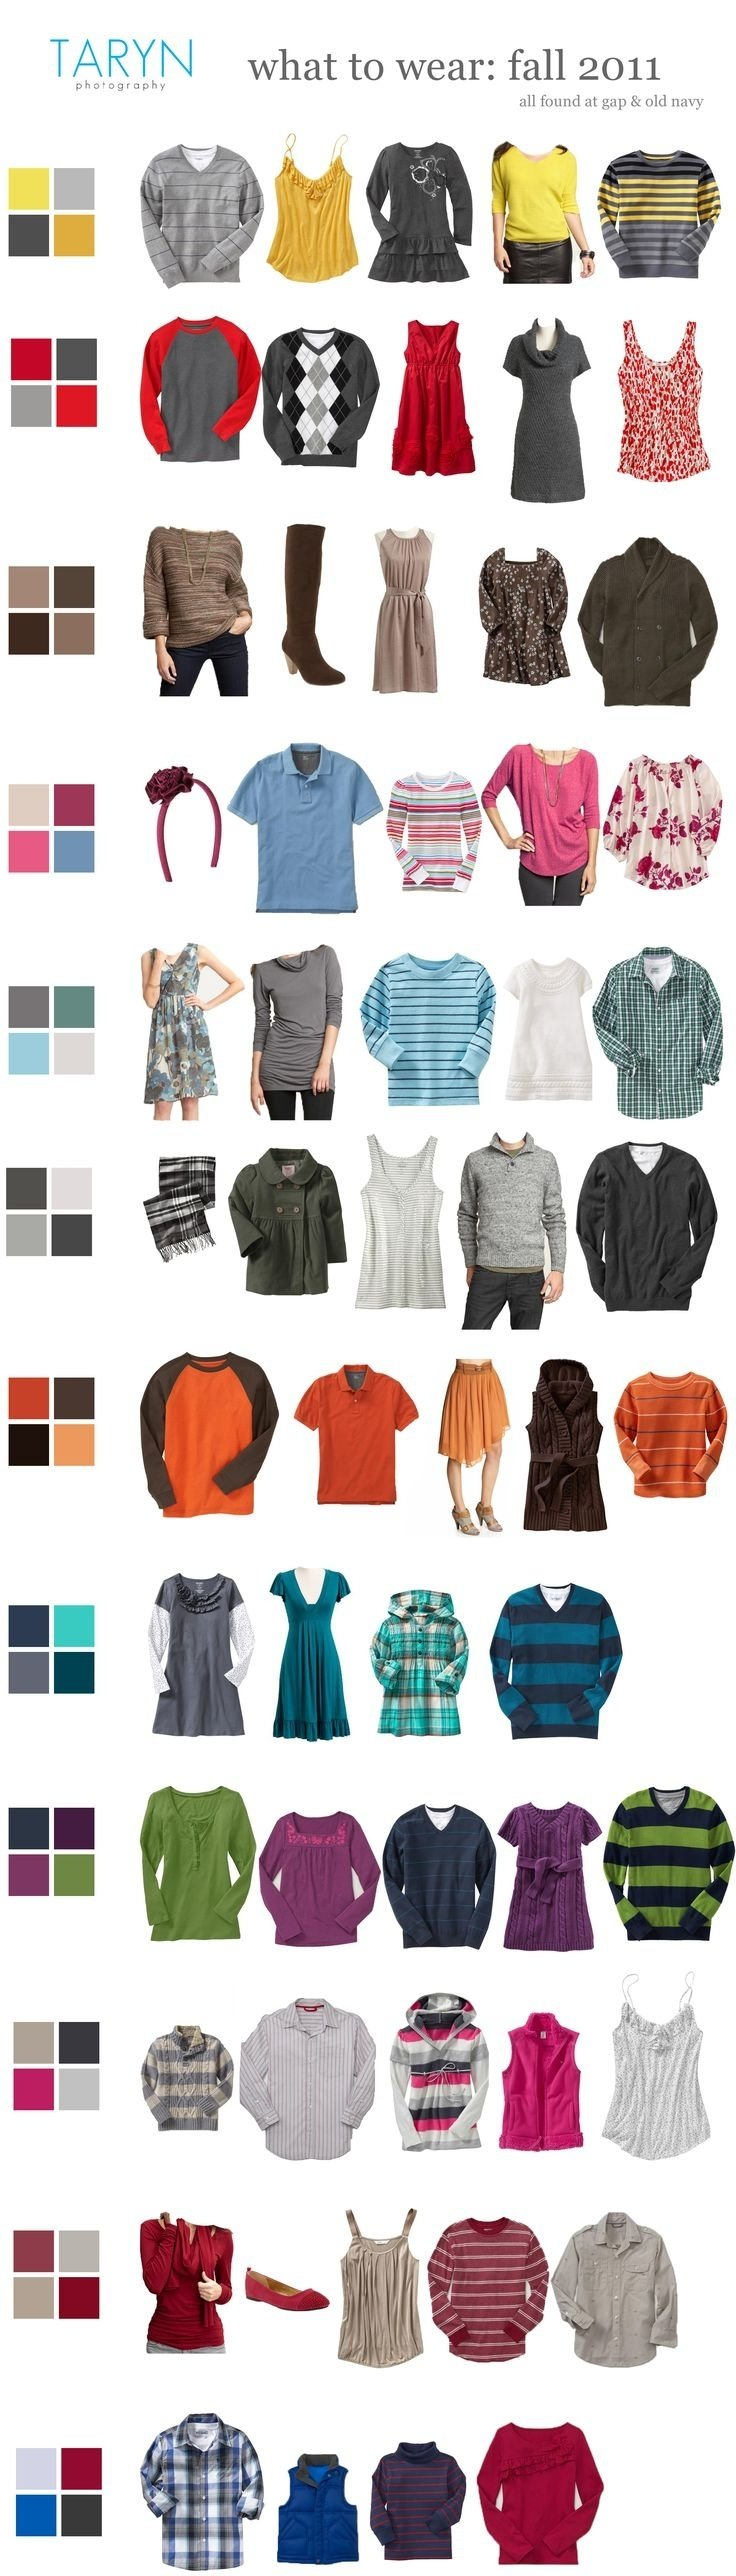 10 Lovable Color Ideas For Family Pictures 106 best family photo wardrobe color palette suggestions images on 3